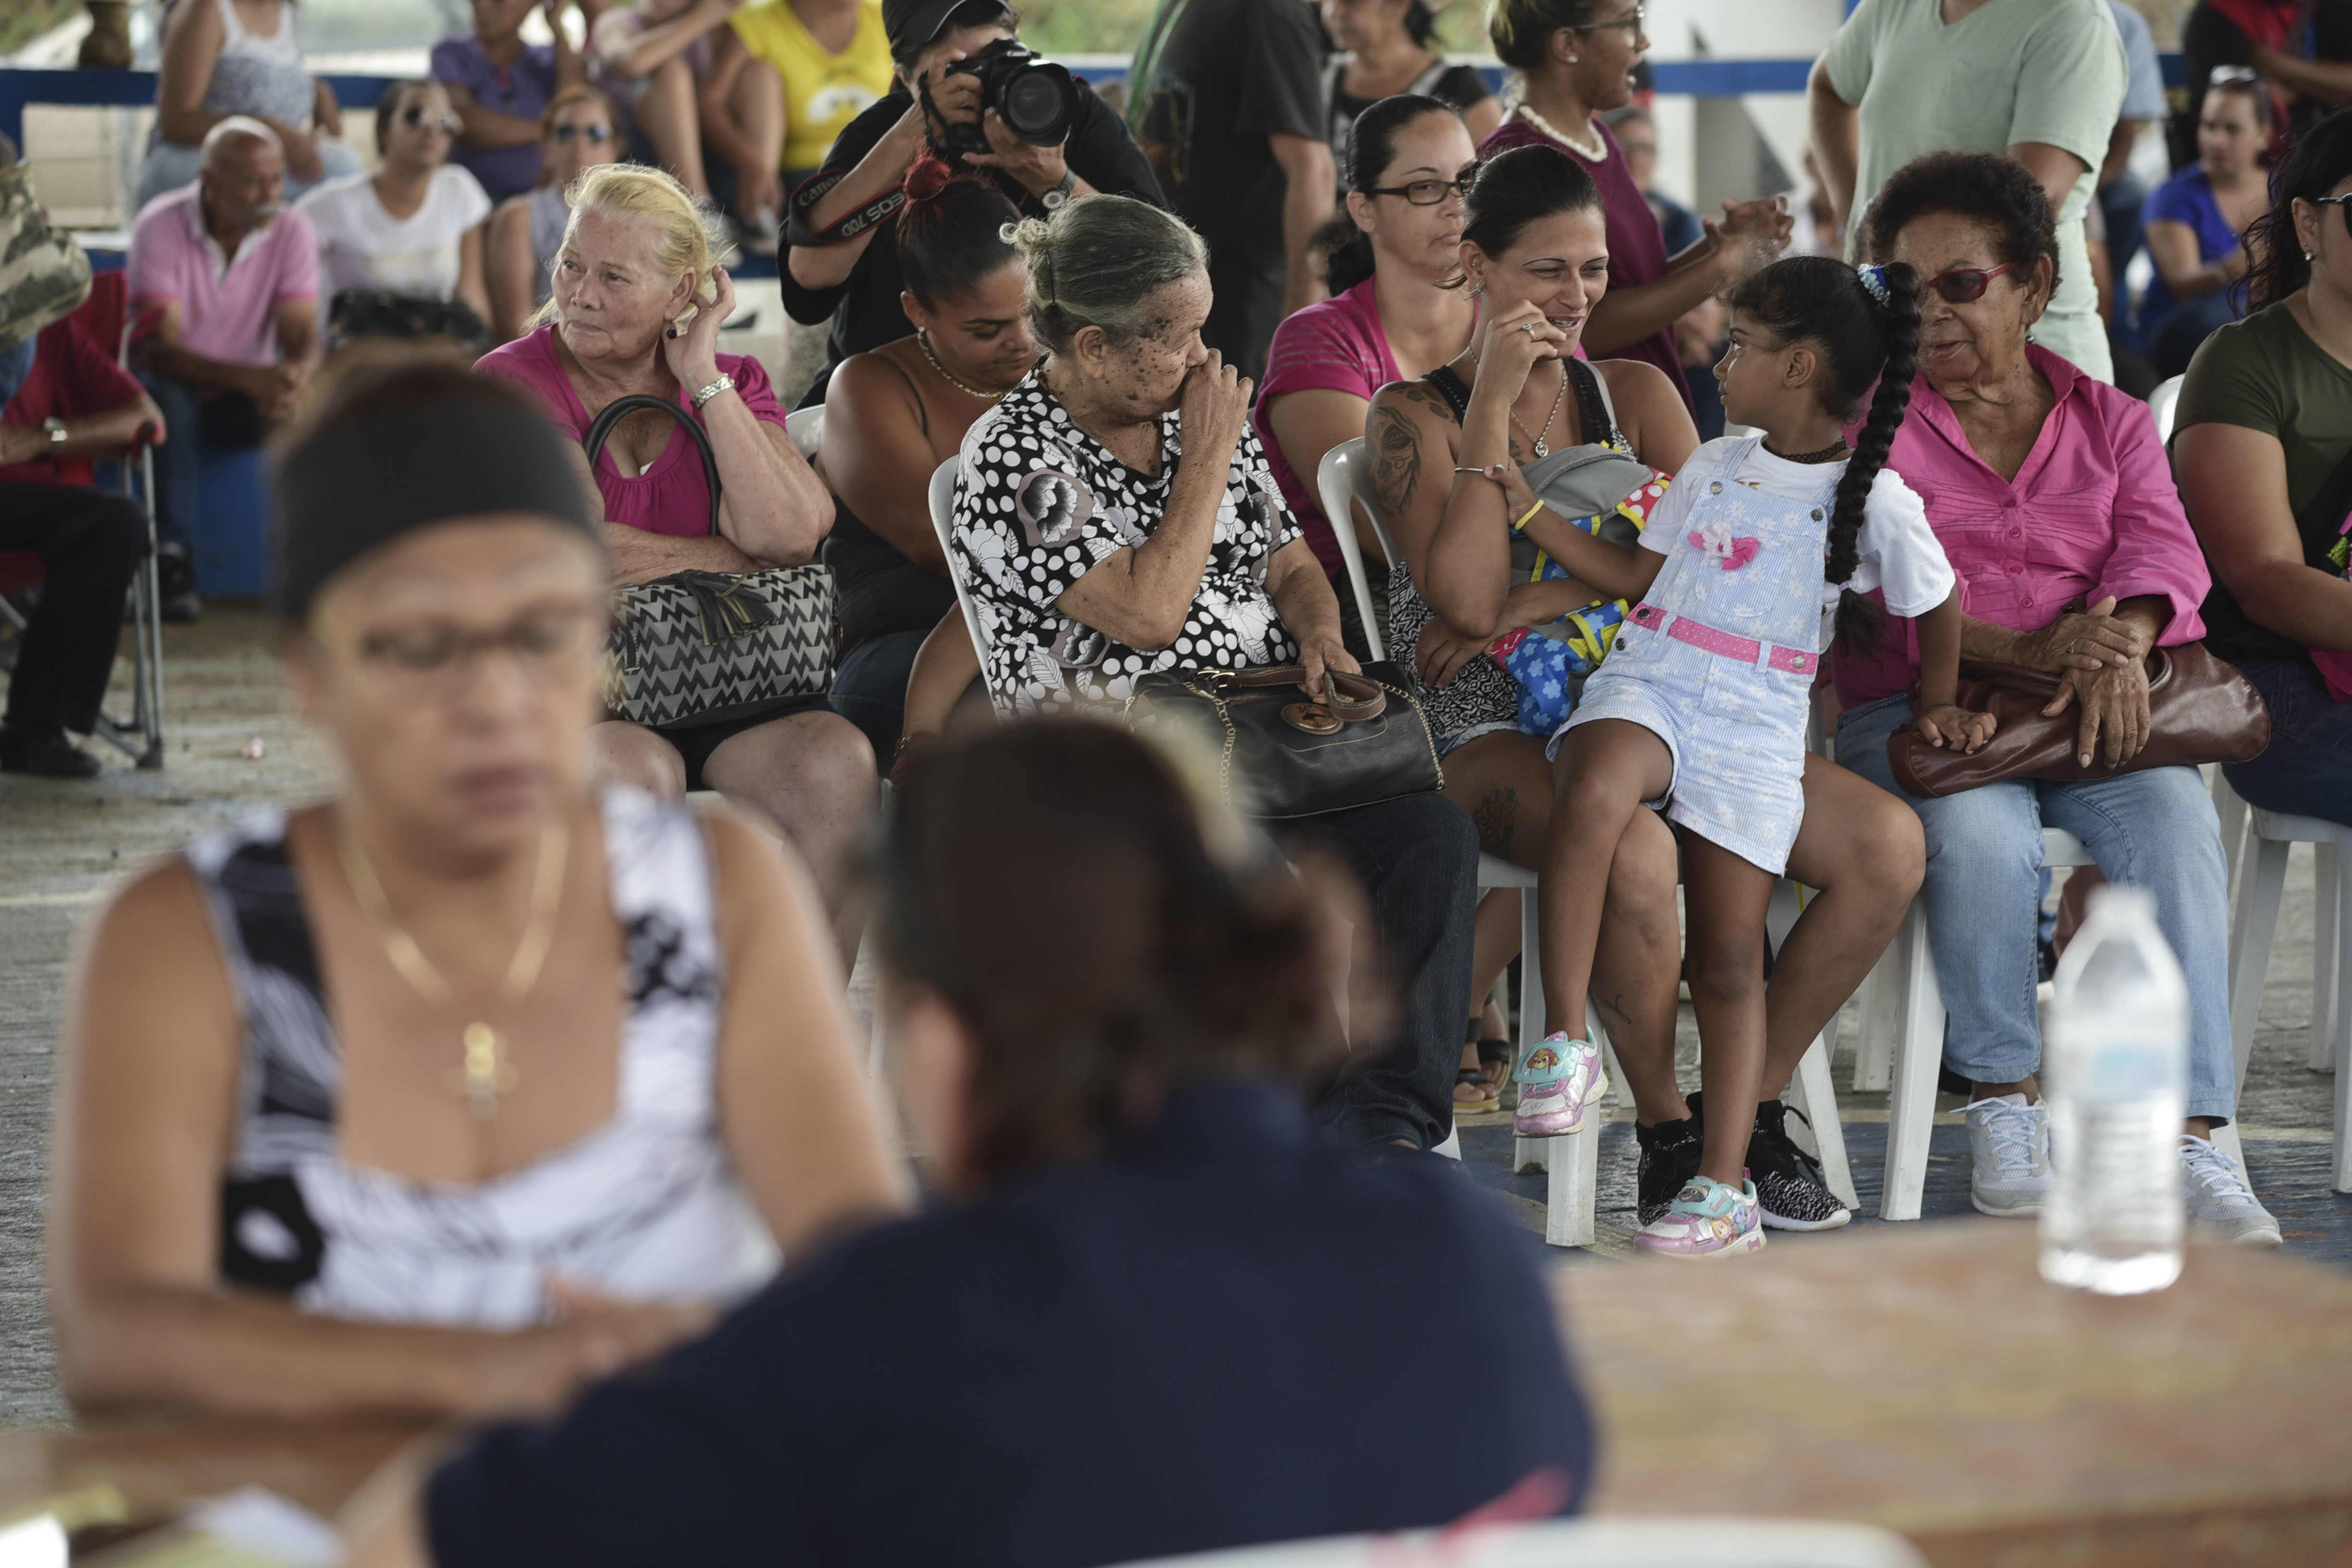 People wait at the Jose de Diego Elementary School to file FEMA forms for federal aid in the aftermath of Hurricane Maria in Las Piedras, Puerto Rico, Monday, Oct. 2, 2017.  Power is still cut off on most of the island, schools and many businesses are closed and much of the countryside is struggling to find fresh water and food. (AP Photo/Carlos Giusti)